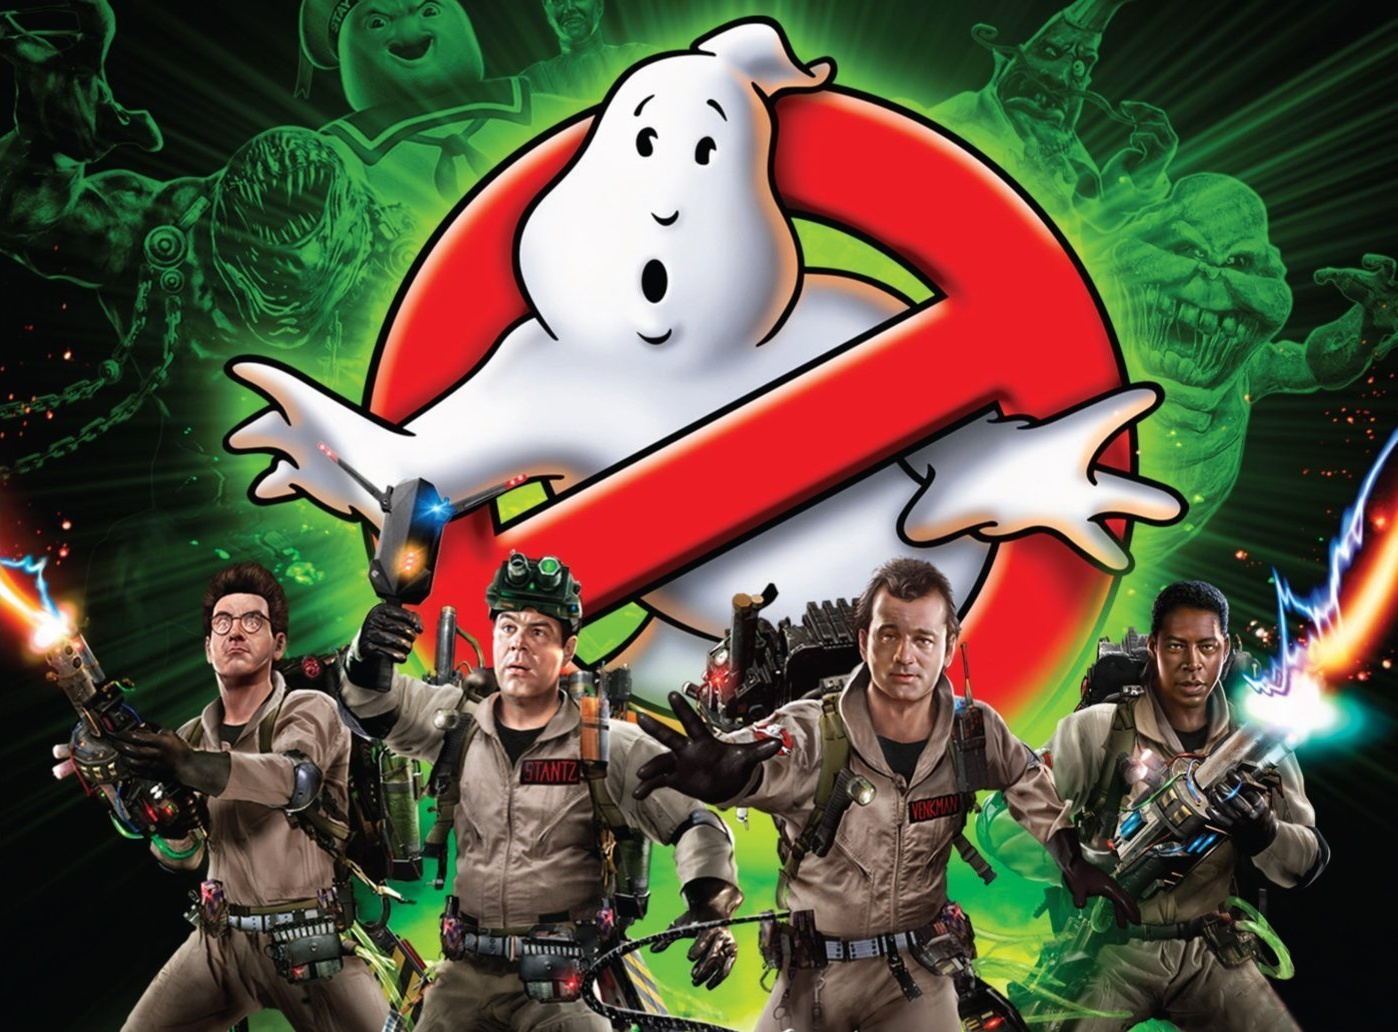 ghostbusters - photo #36